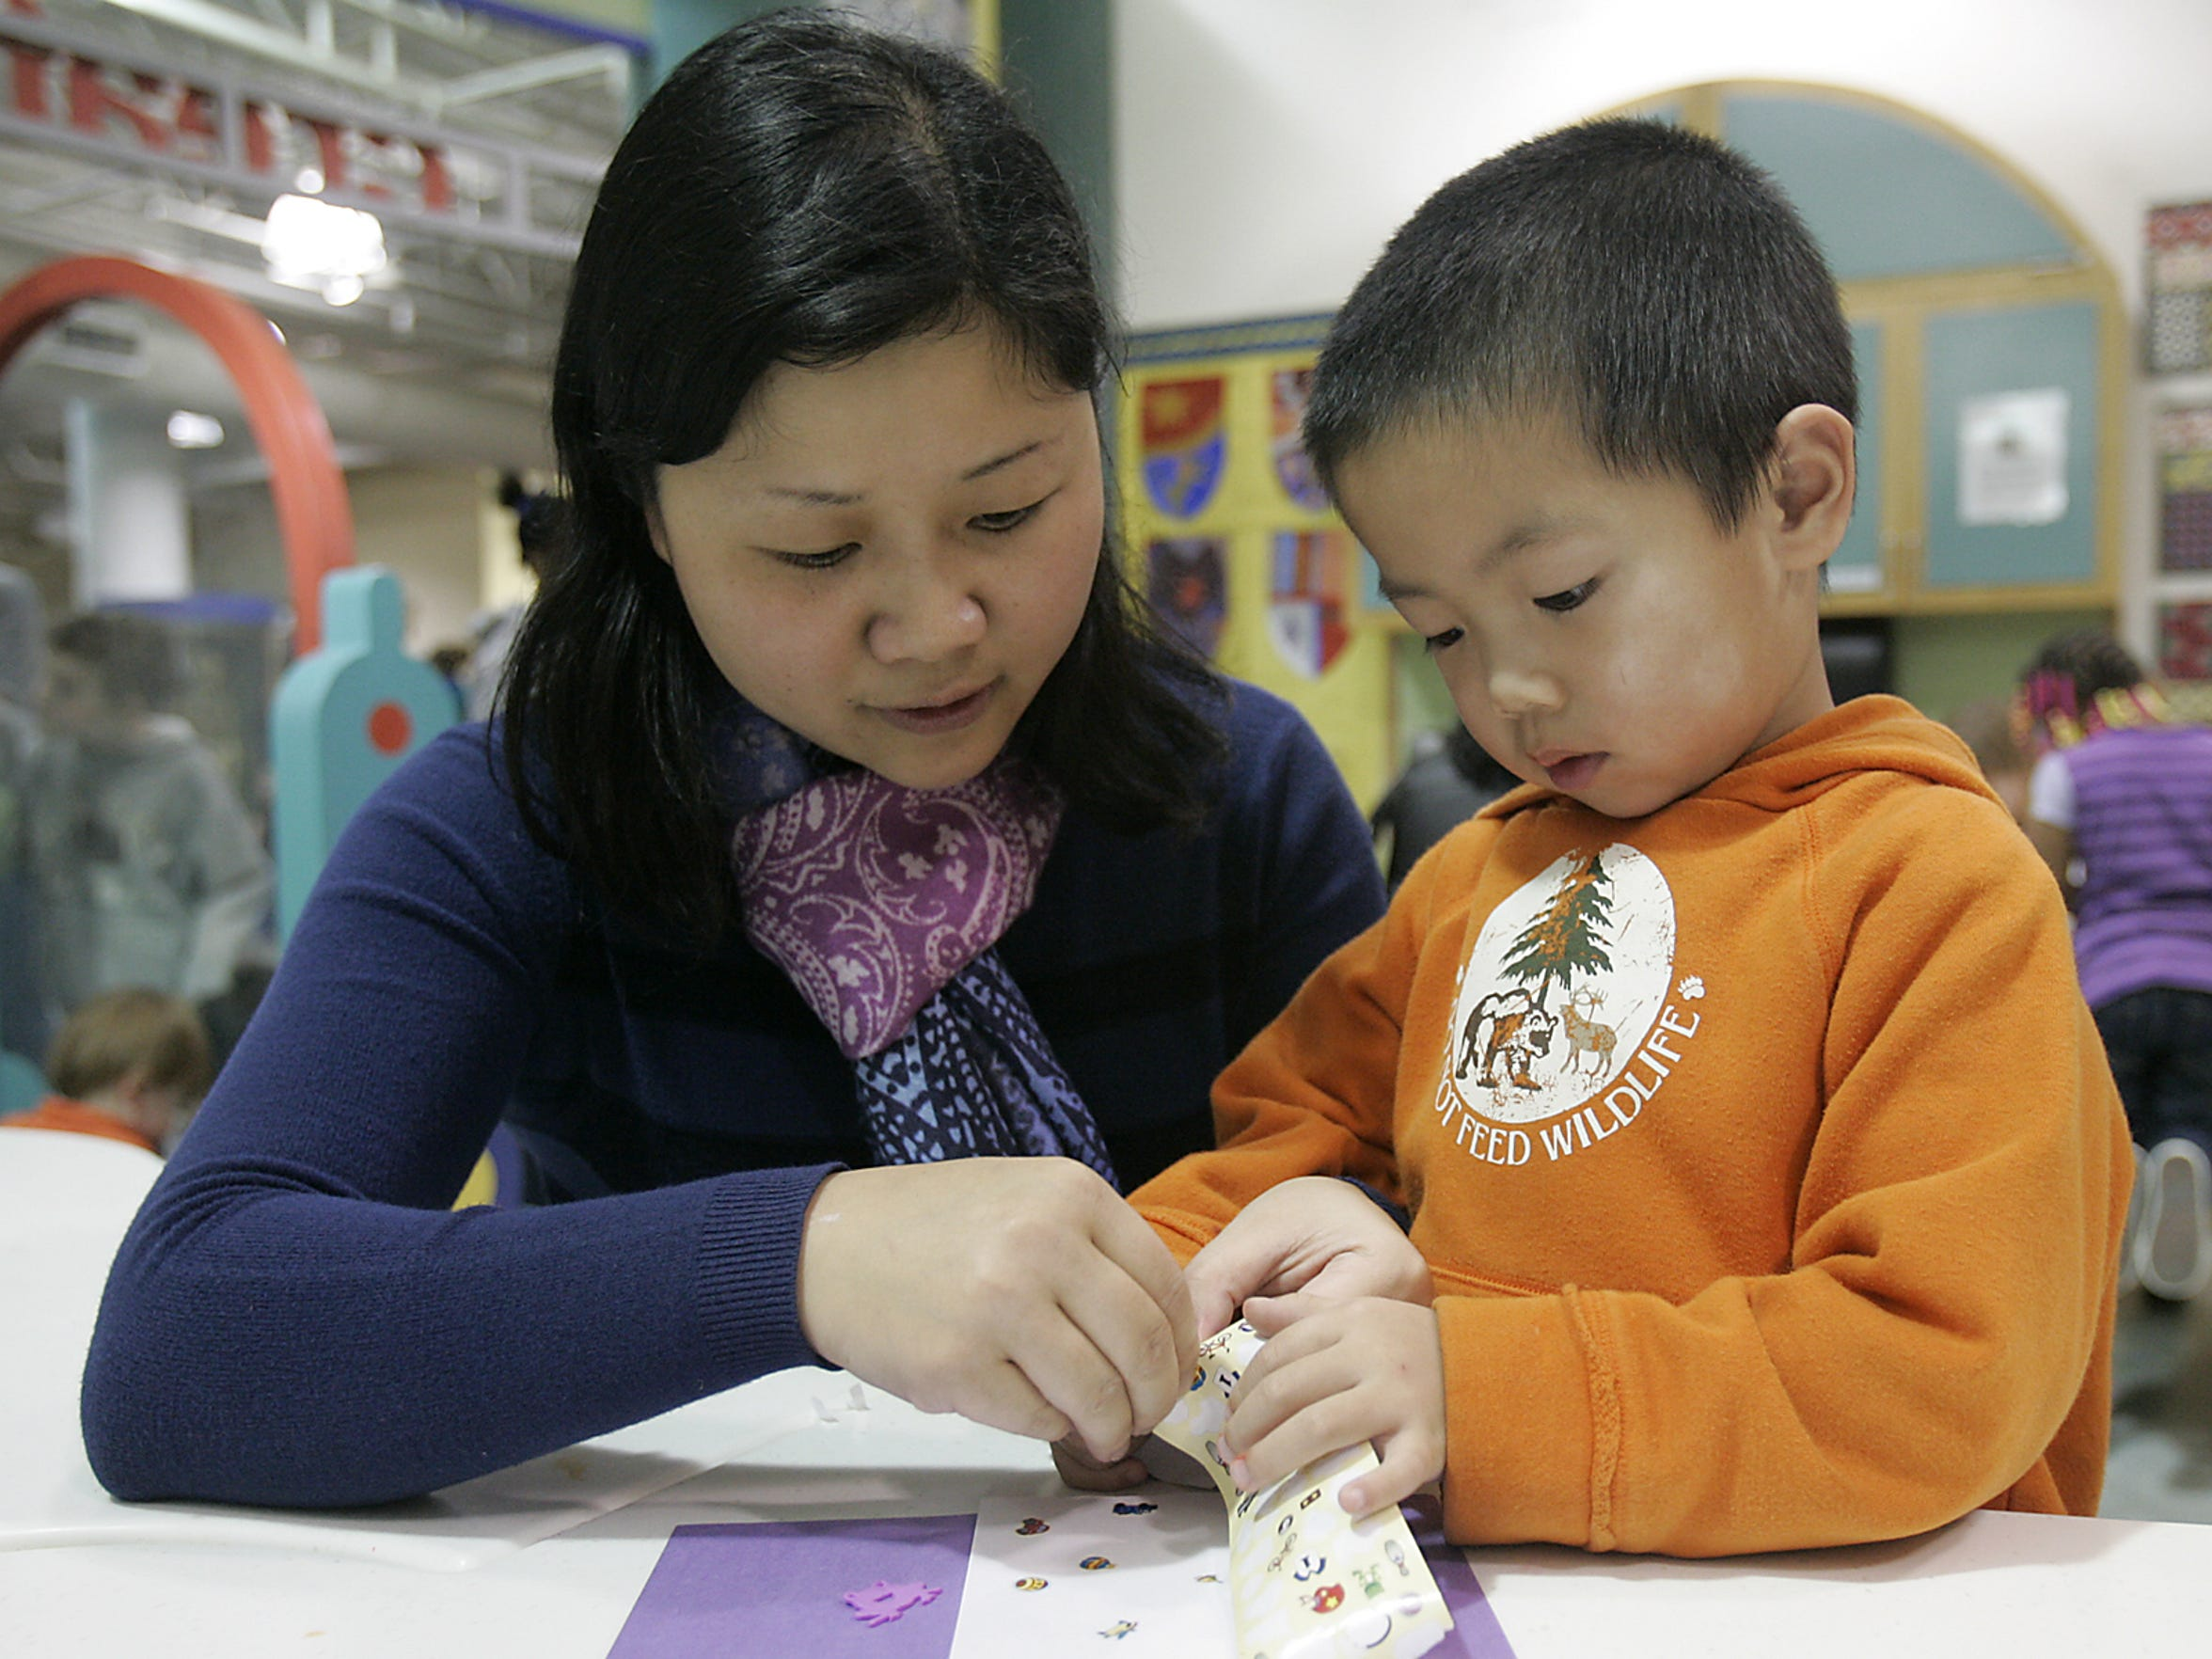 Li Liu Chen works with her son William to make a thank you card to the troops as part of the MLK Day activities held at the Discovery Center.